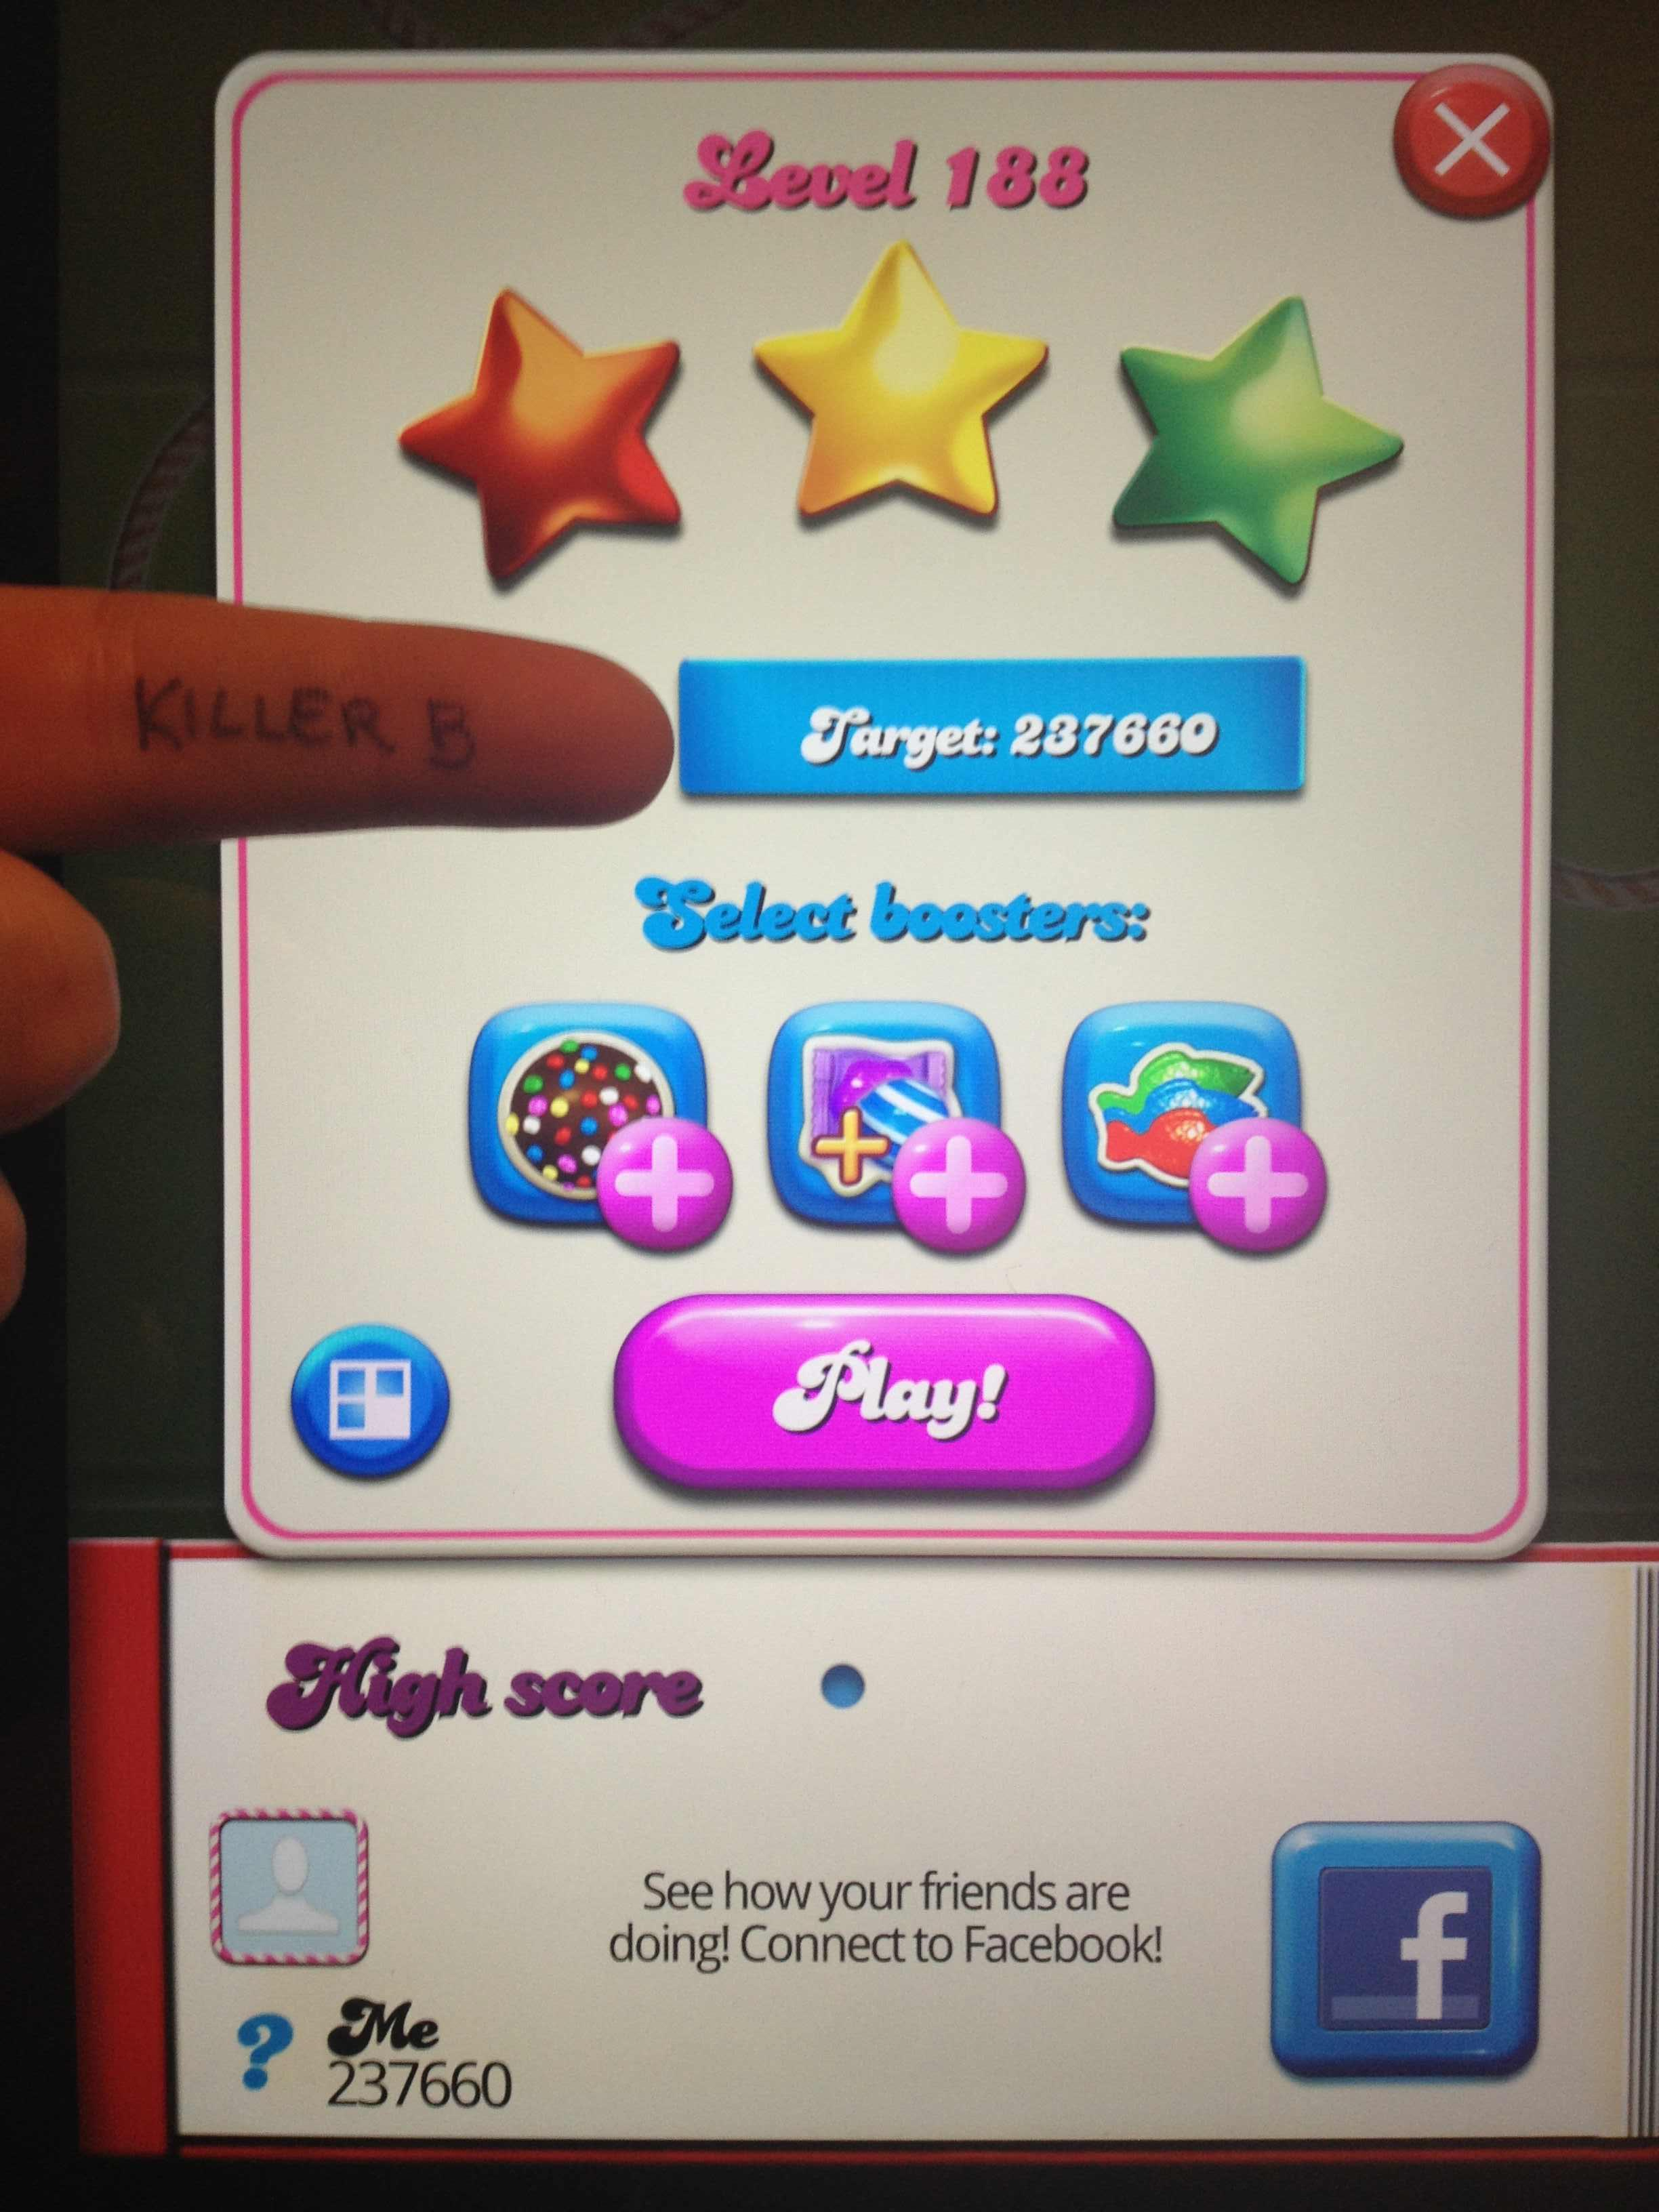 KillerB: Candy Crush Saga: Level 188 (iOS) 237,660 points on 2013-10-19 20:00:34